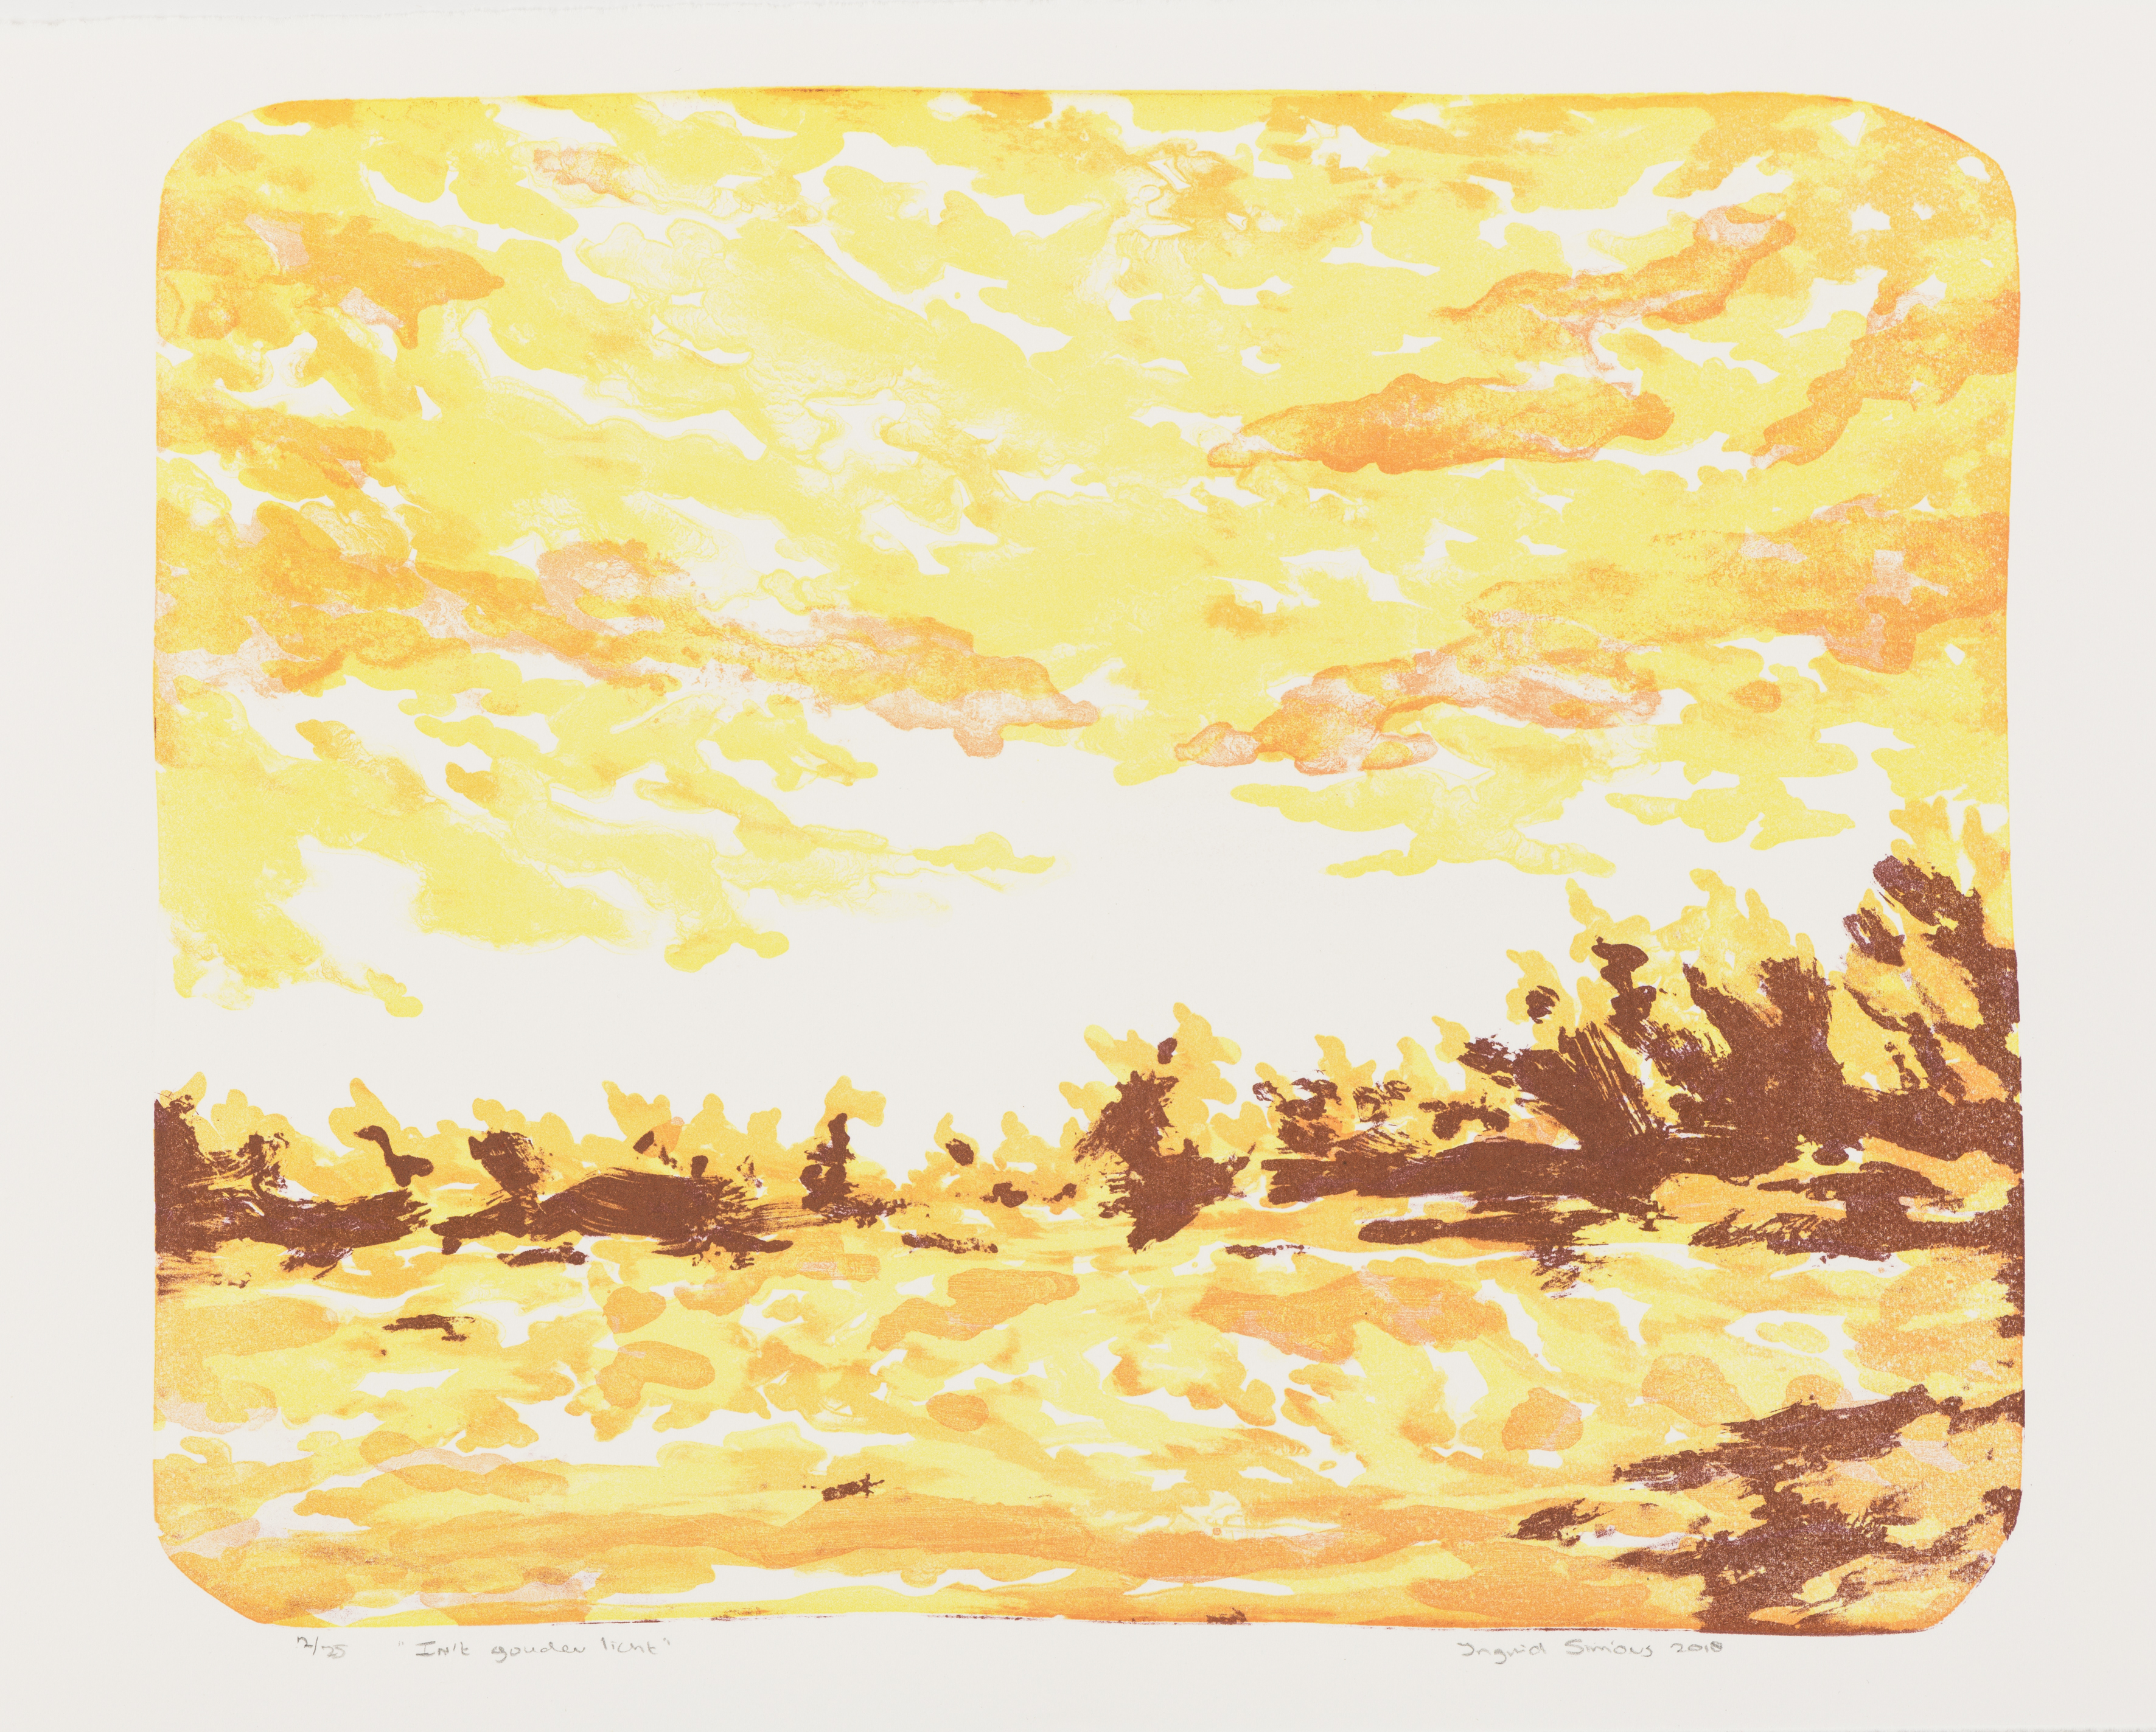 """""""In 't Gouden Licht"""", A4, litho (Printed in Berlin 2018, Special Edition for publication AiR Van GoghHuis)"""